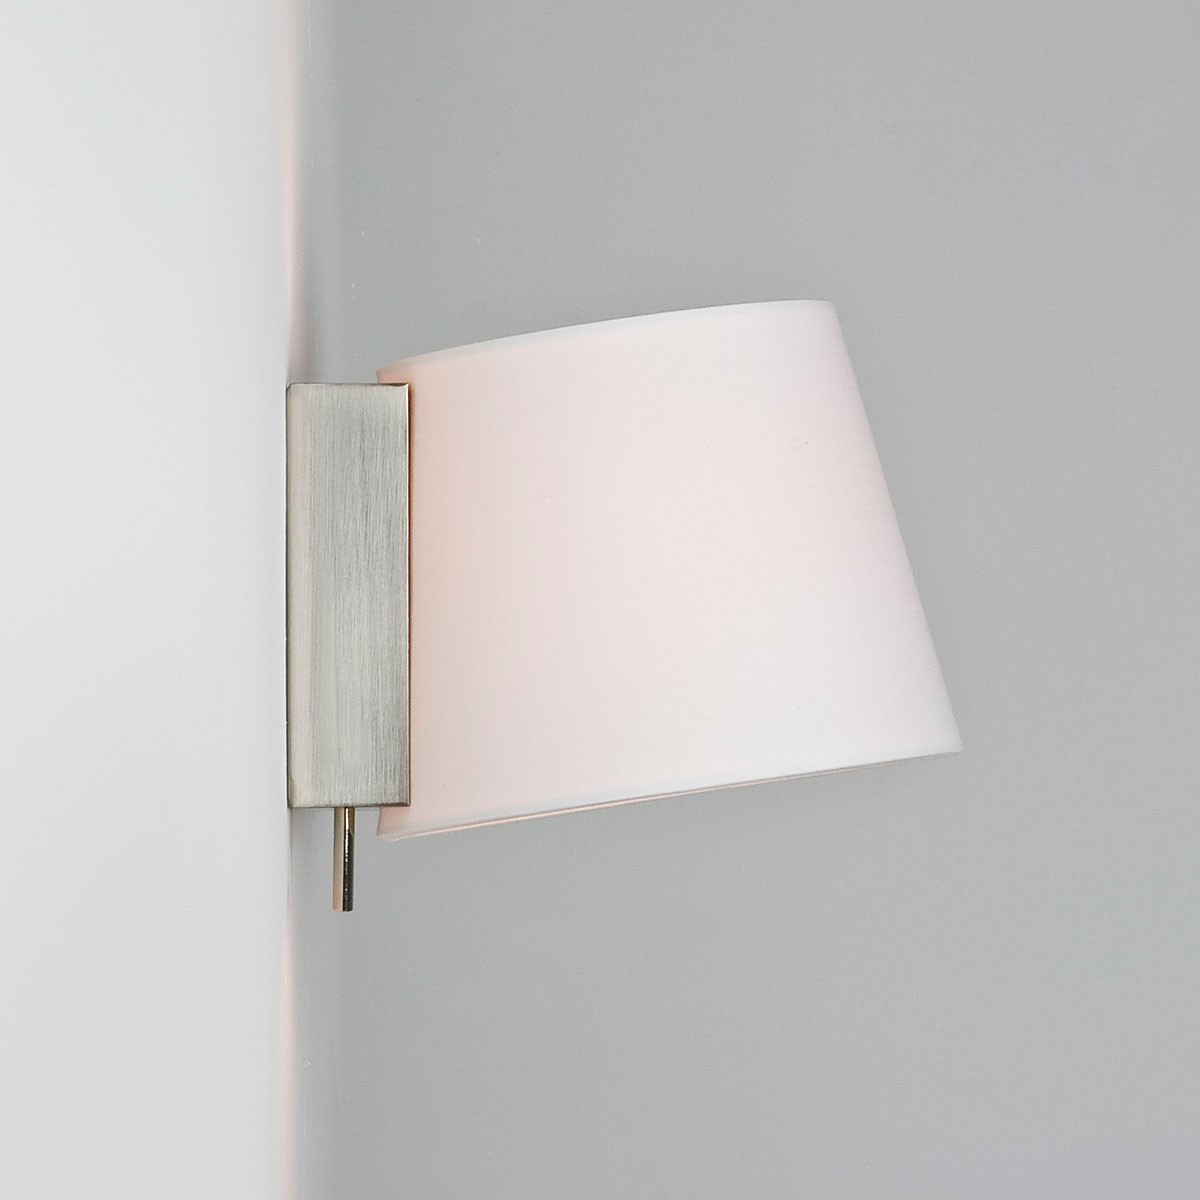 Wall Lights Nickel : Astro Sala Brushed Nickel Wall Light with White Shade at UK Electrical Supplies.